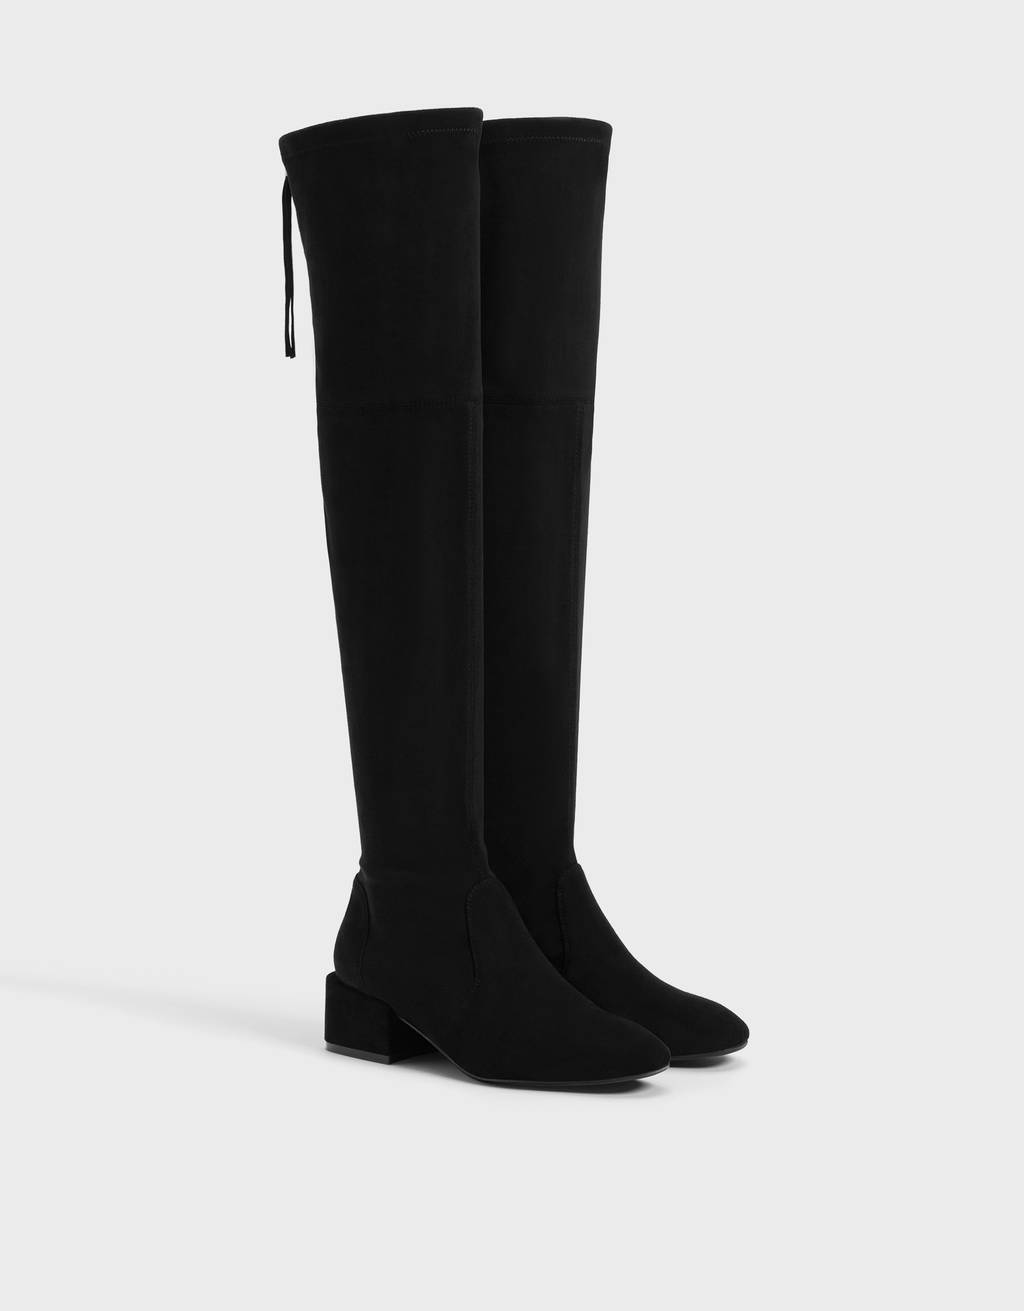 Flat stretch over-the-knee boots